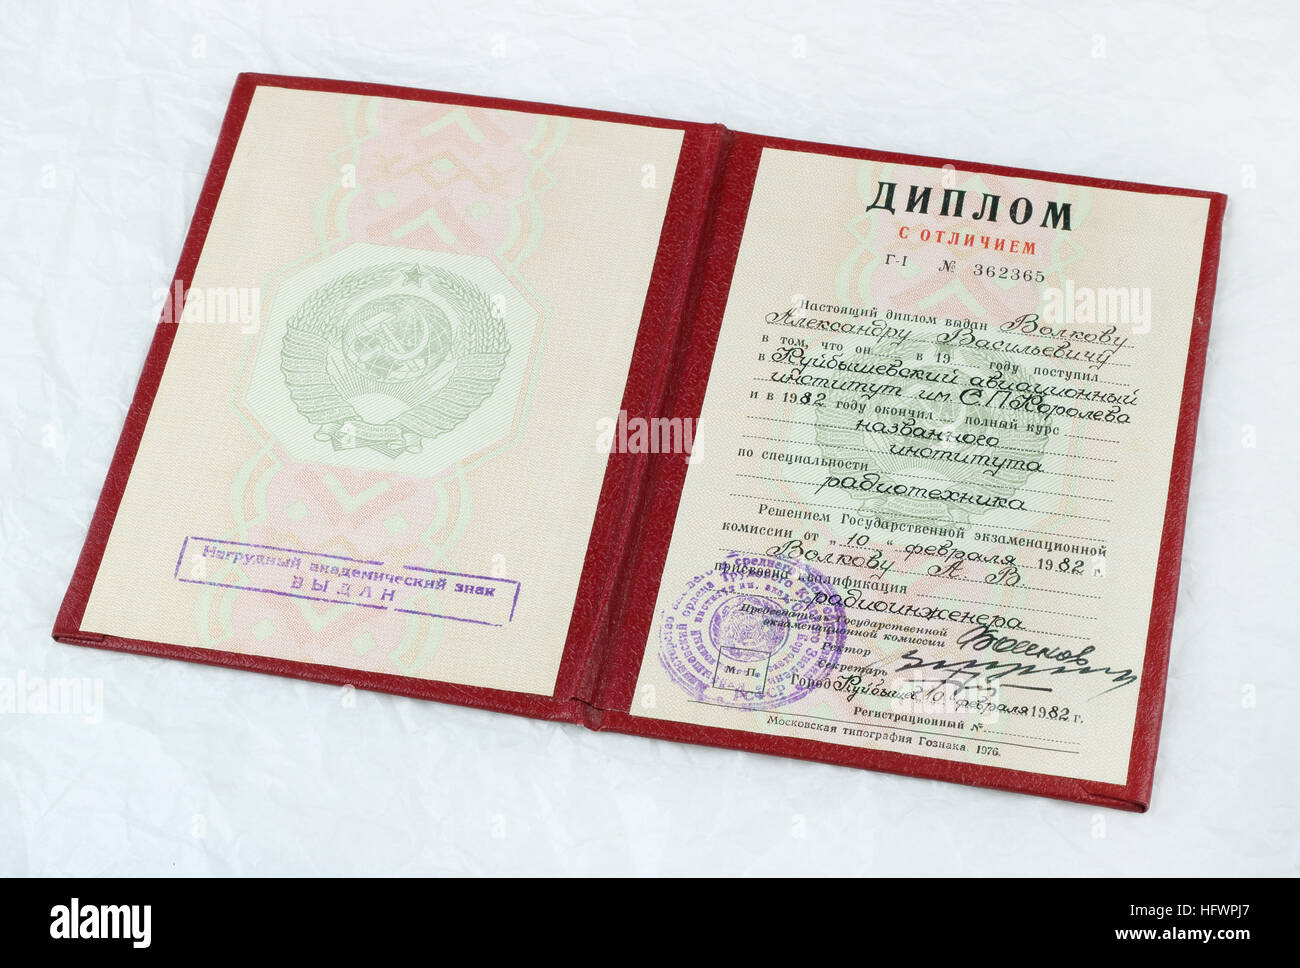 VILNIUS,  LITHUANIA - DECEMBER 16, 2016: The vintage red diploma about the termination of institute with excellent - Stock Image